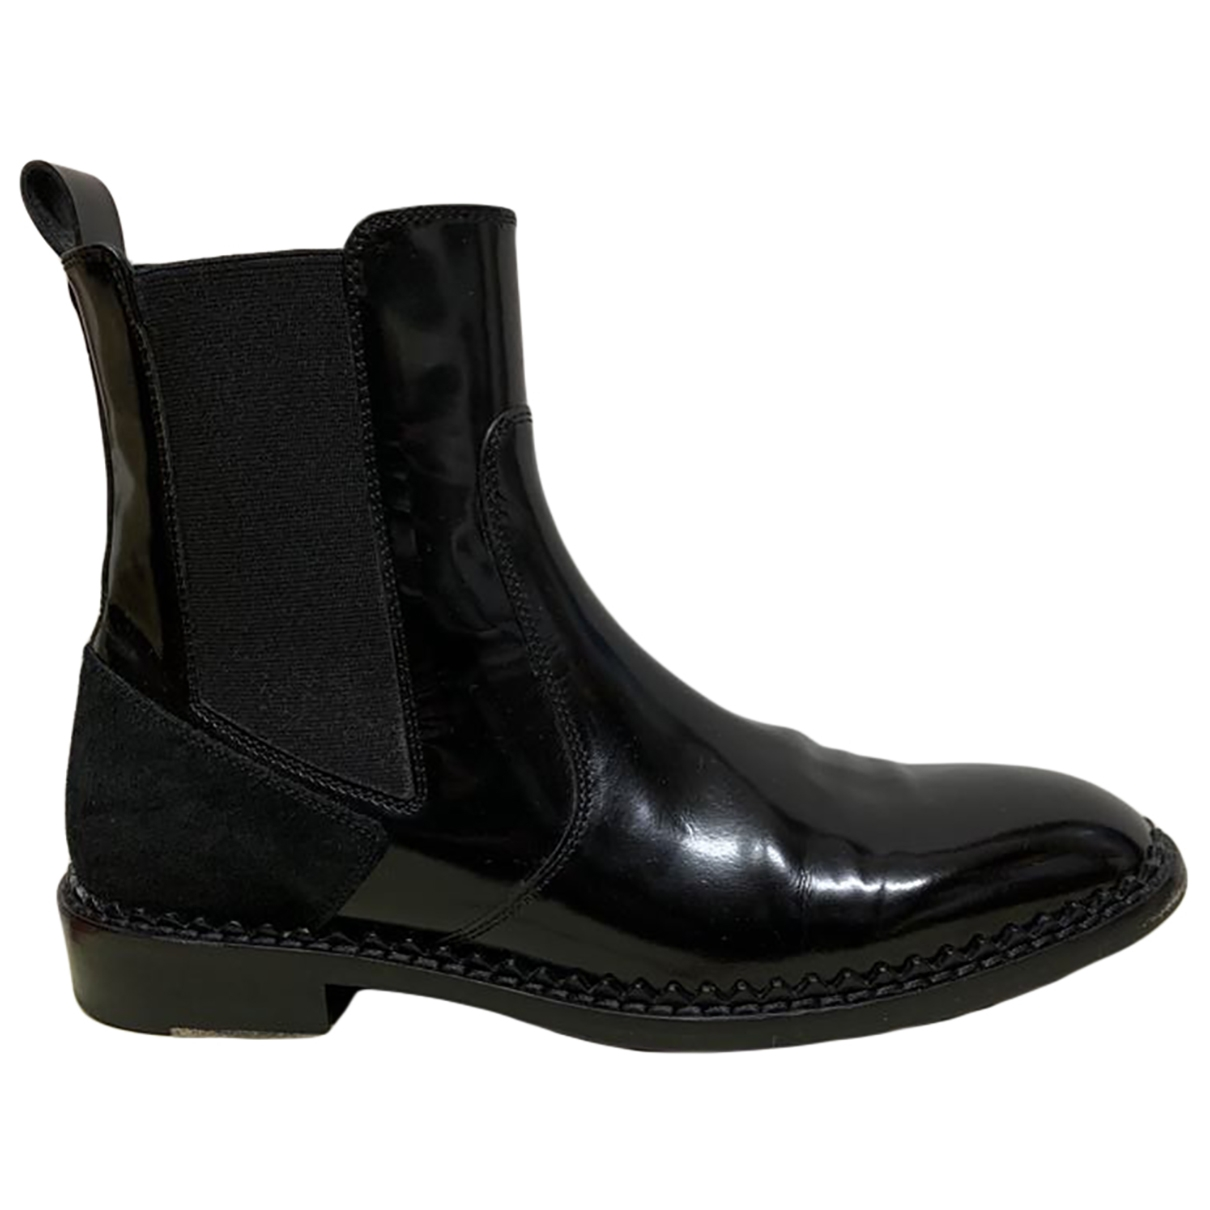 John Galliano \N Black Patent leather Ankle boots for Women 39 EU